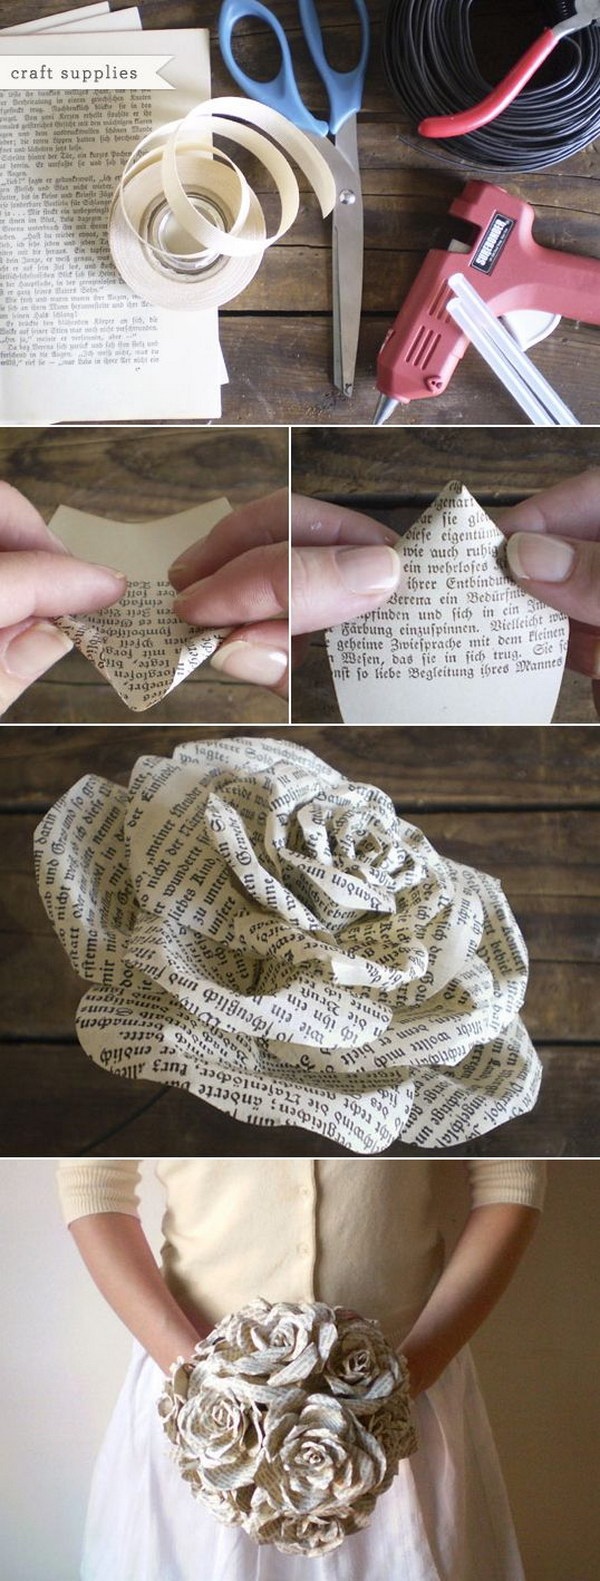 40 Cool Diy Projects Made With Old Books 2017